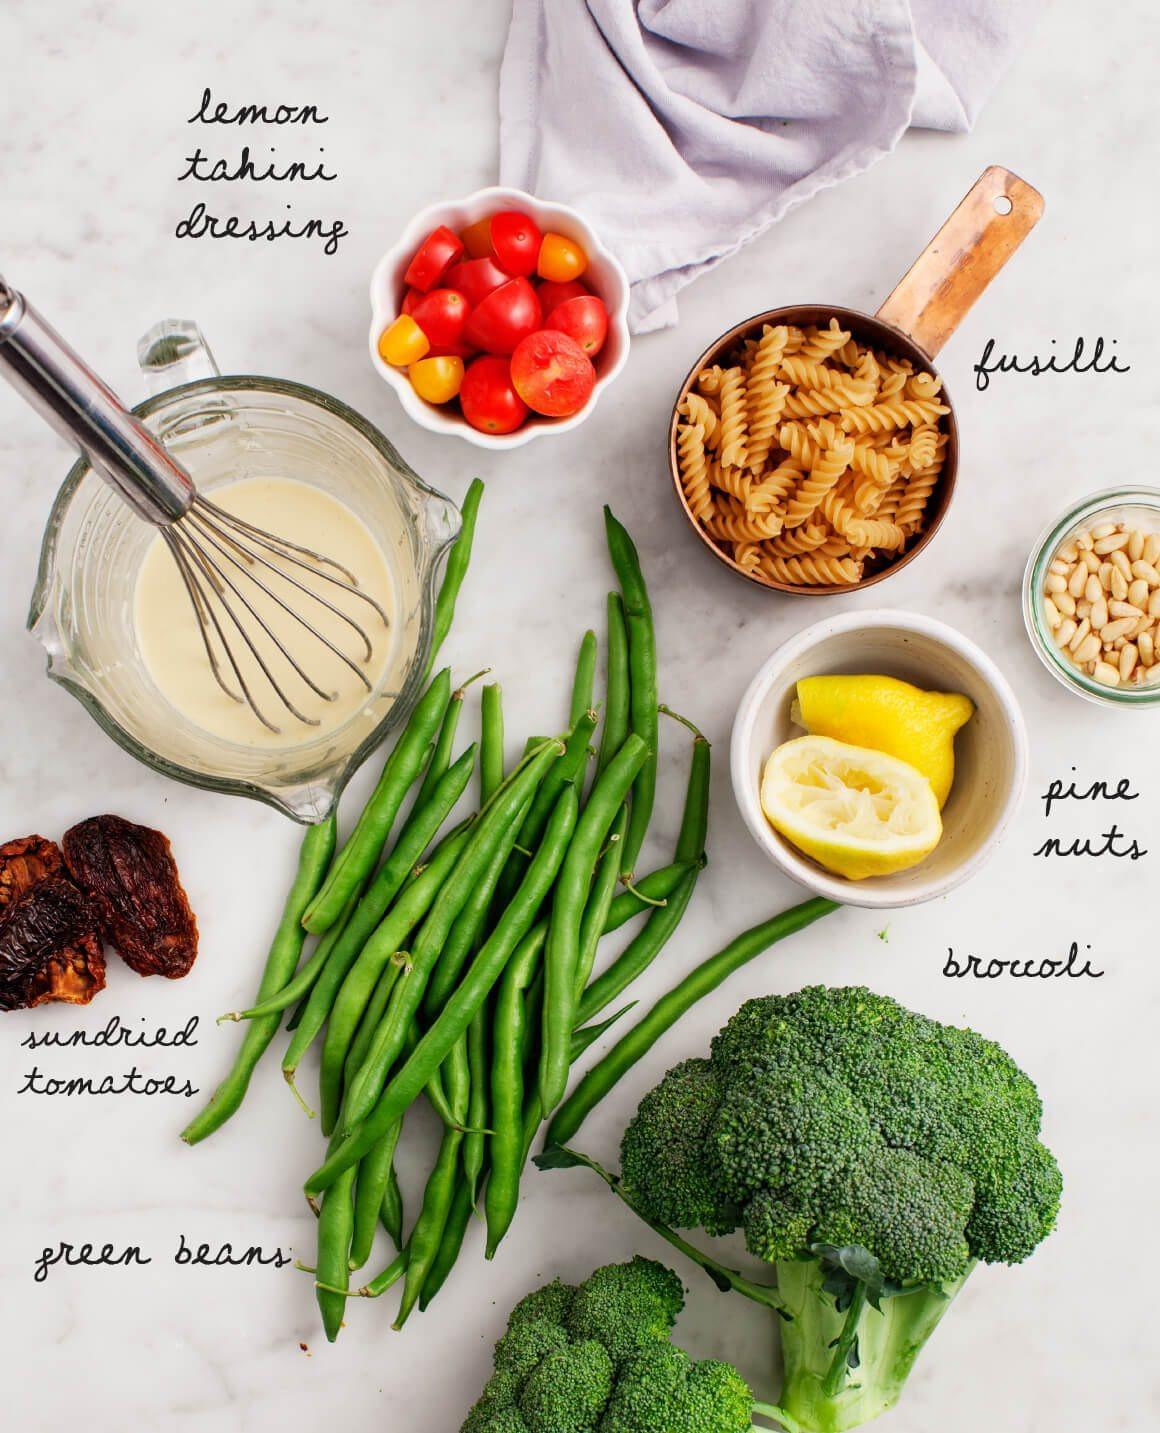 Healthy Broccoli Pasta Salad  Broccoli Tahini Pasta Salad Recipe Love and Lemons